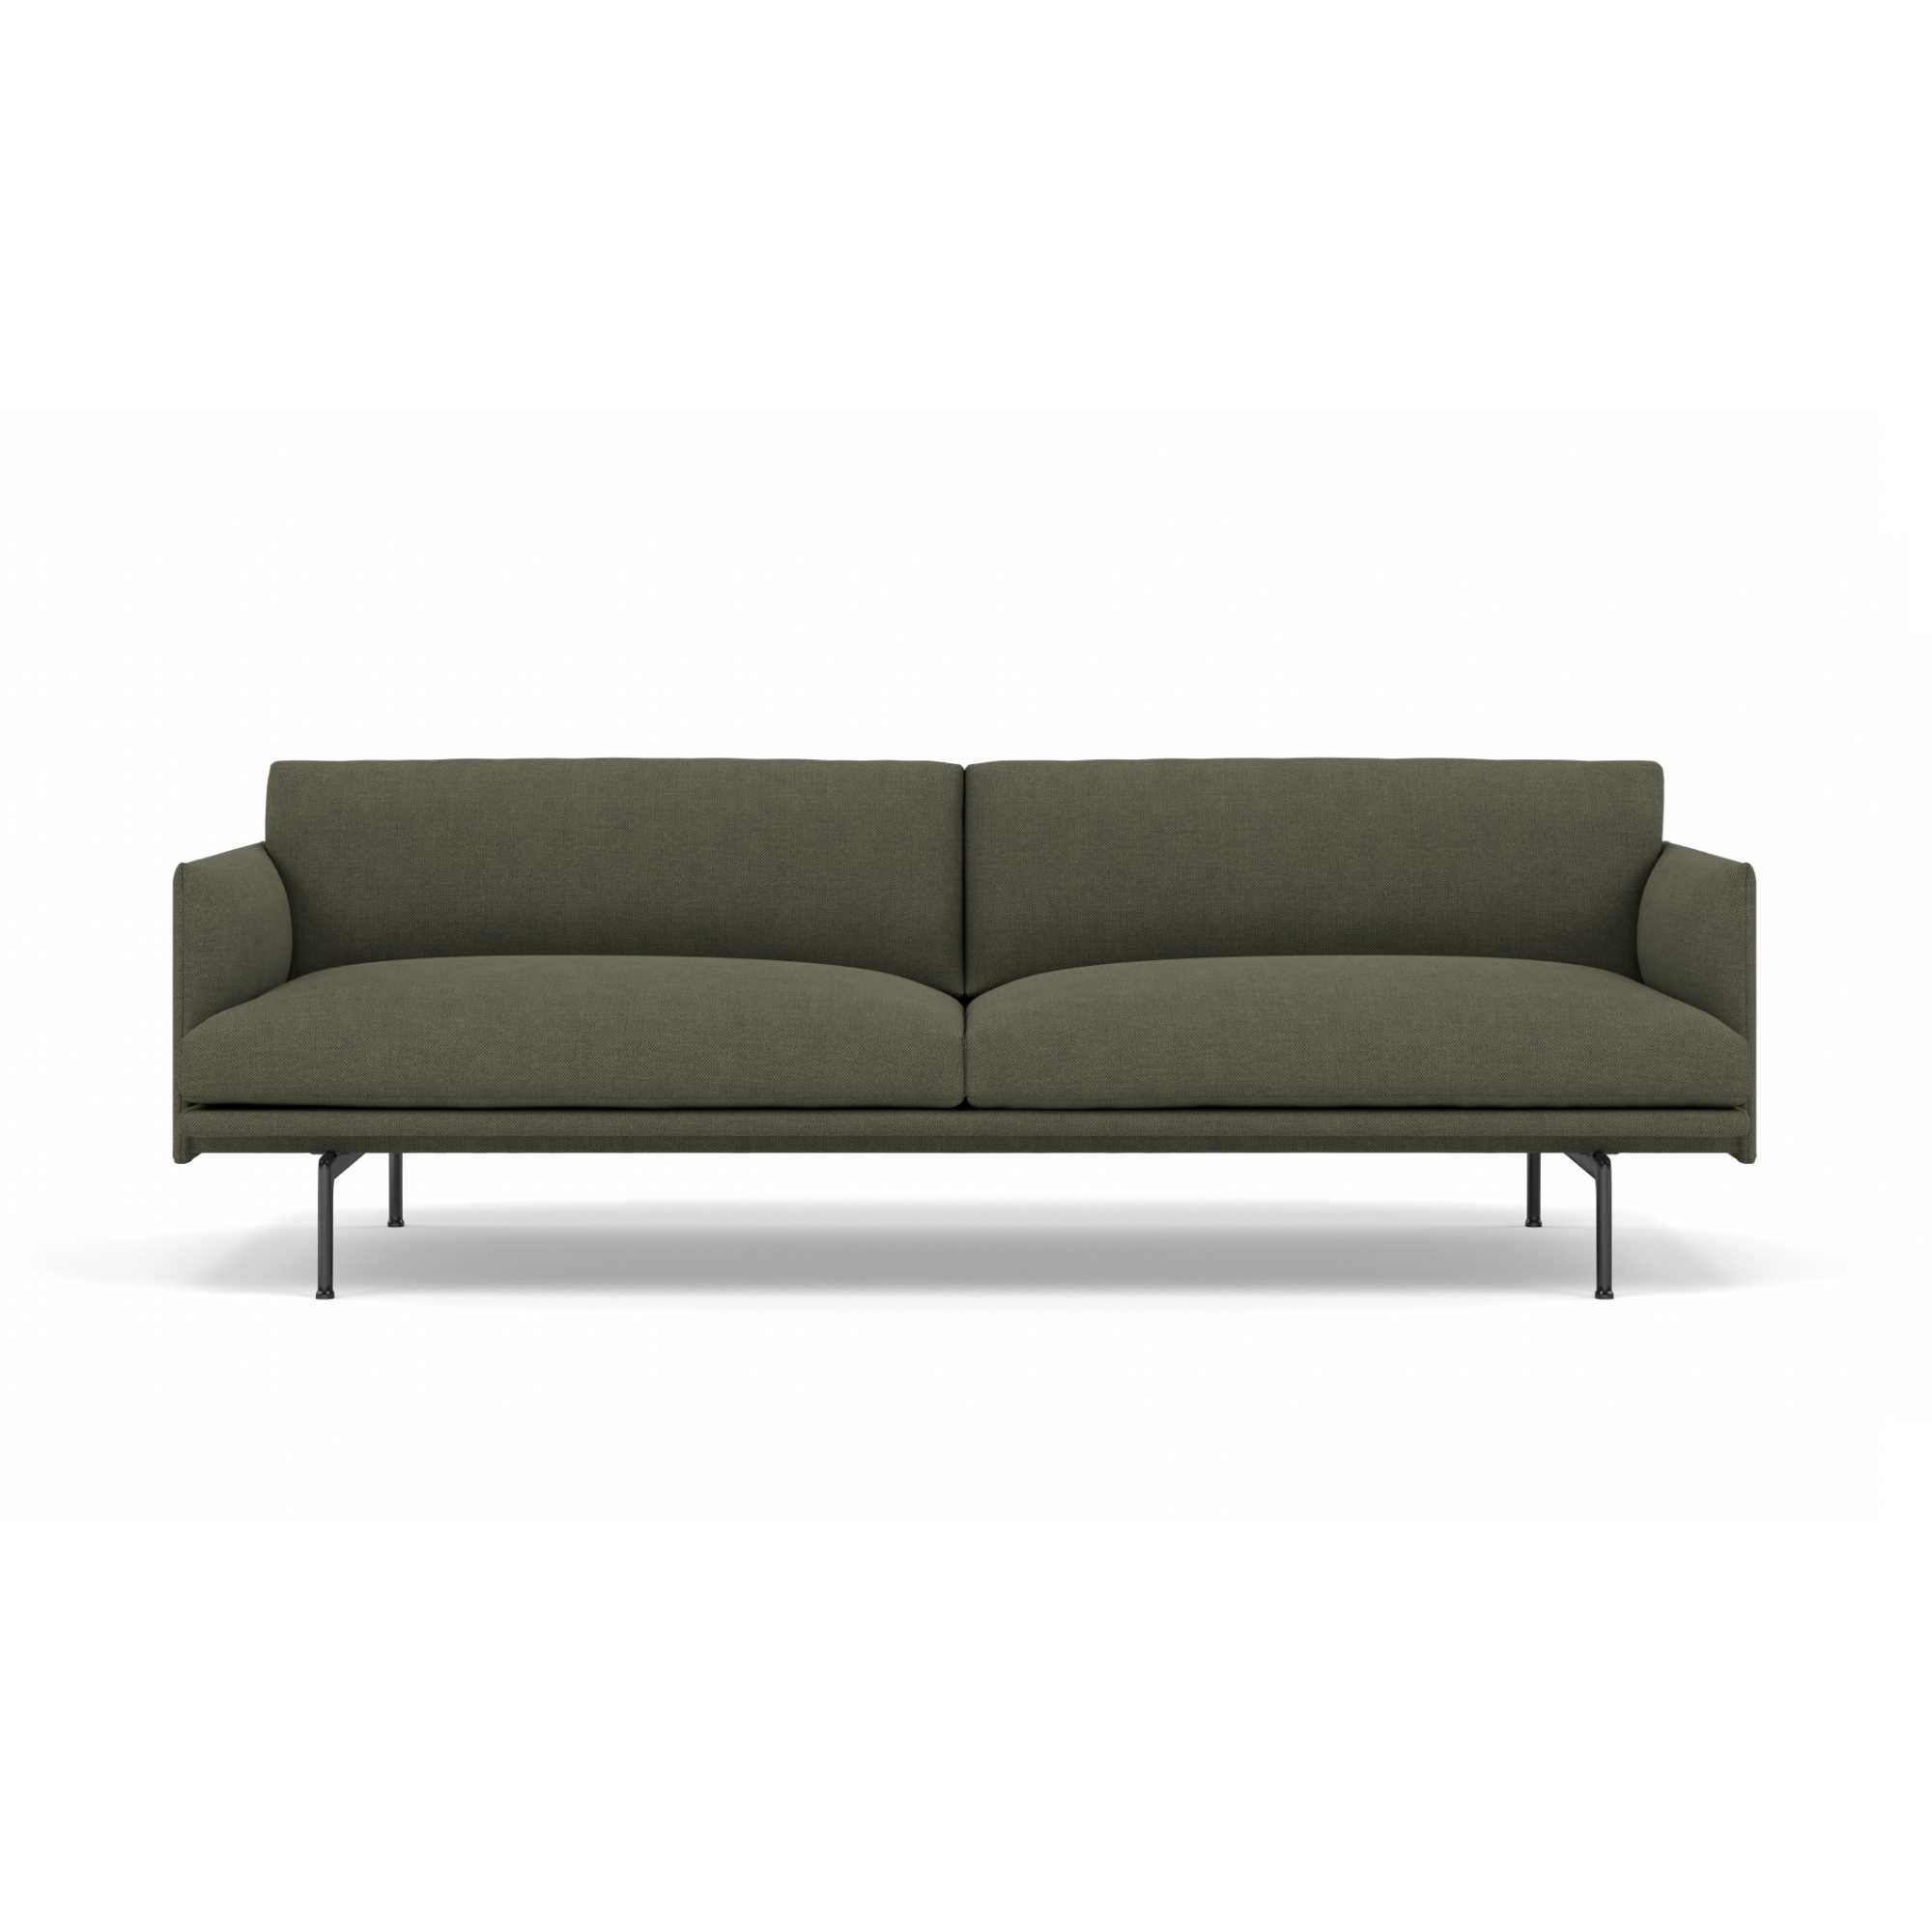 Muuto Outline Chair Black Base , Fiord 961